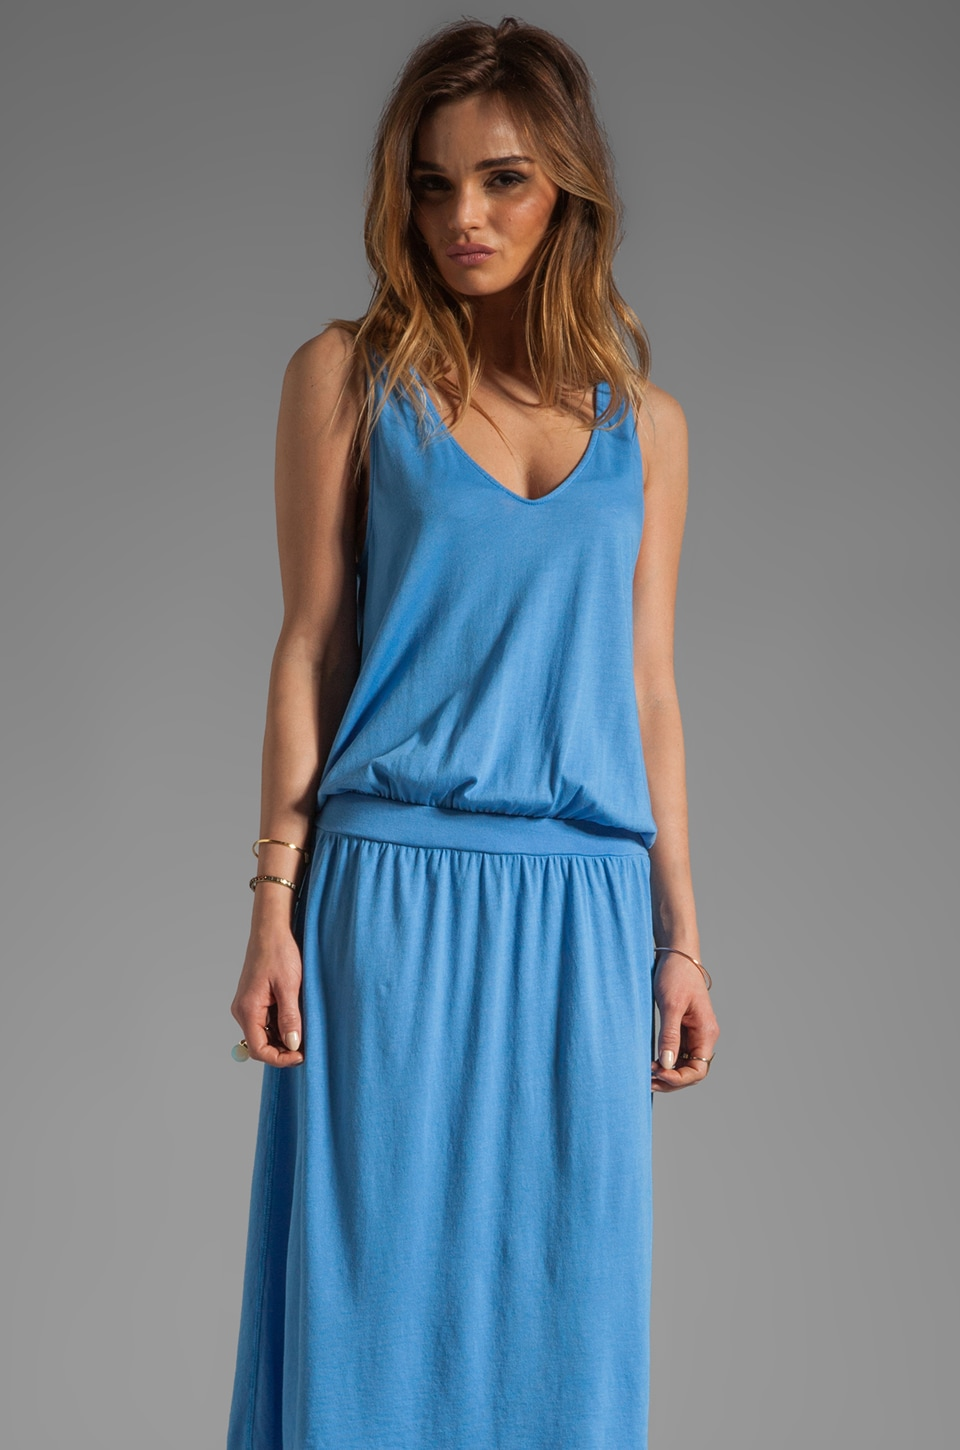 Soft Joie Celani Dress in Marina